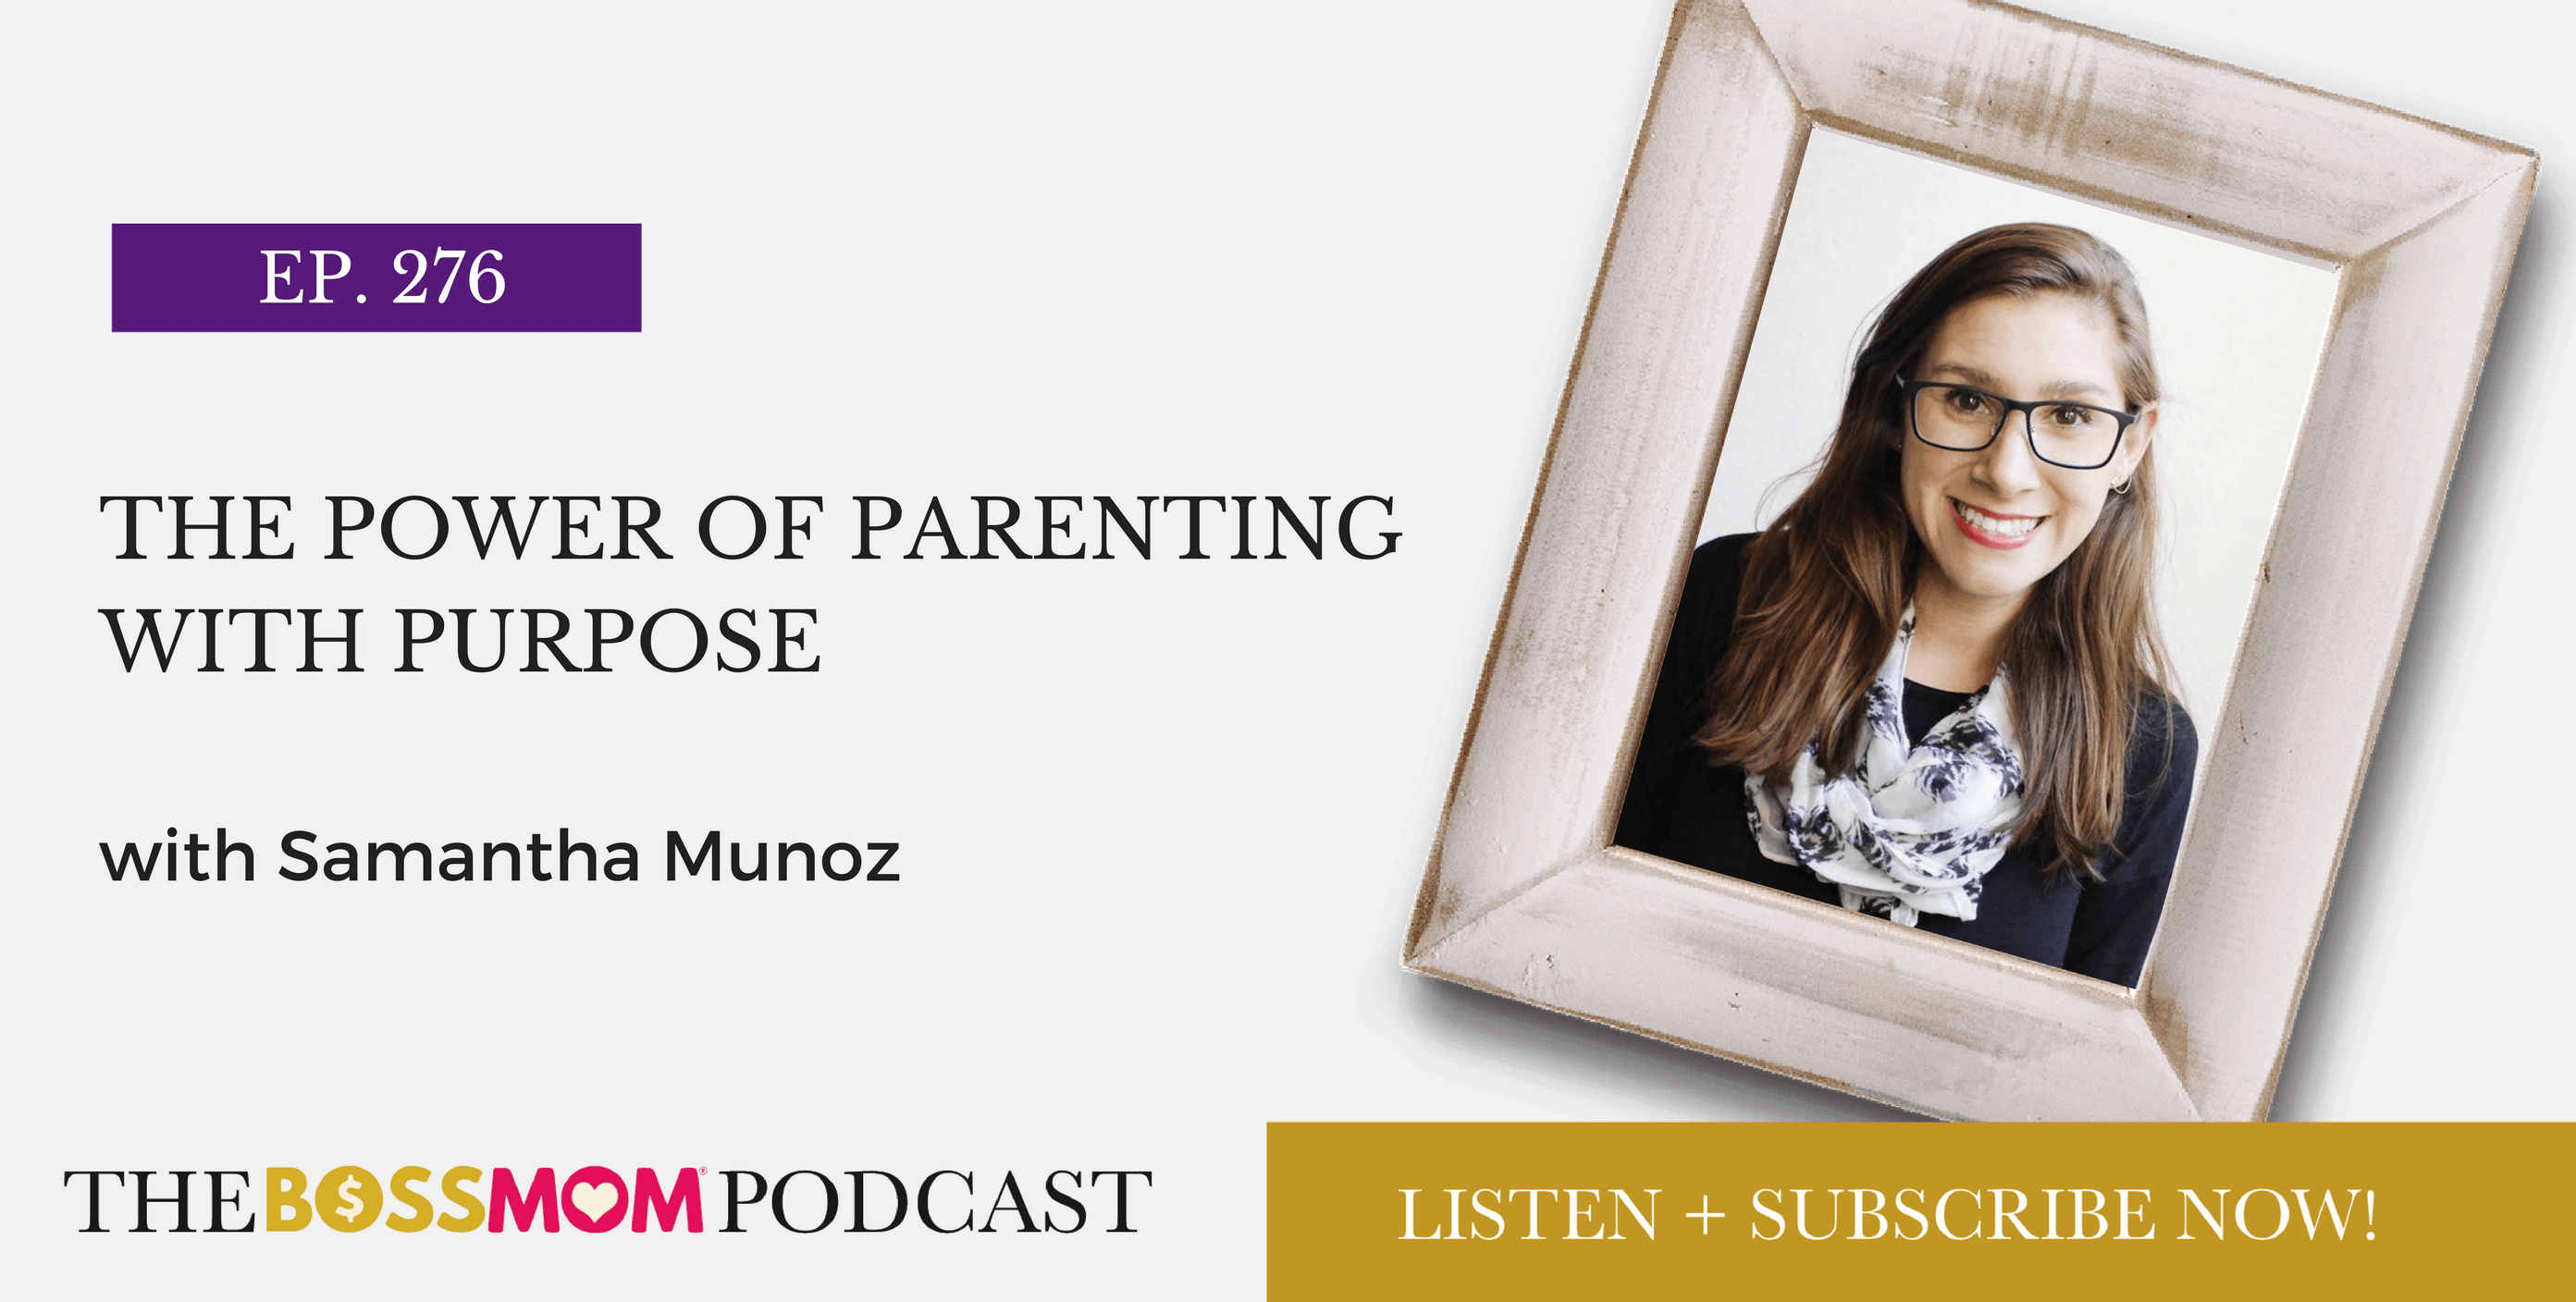 Episode 276: The Power of Parenting with Purpose with Samantha Munoz